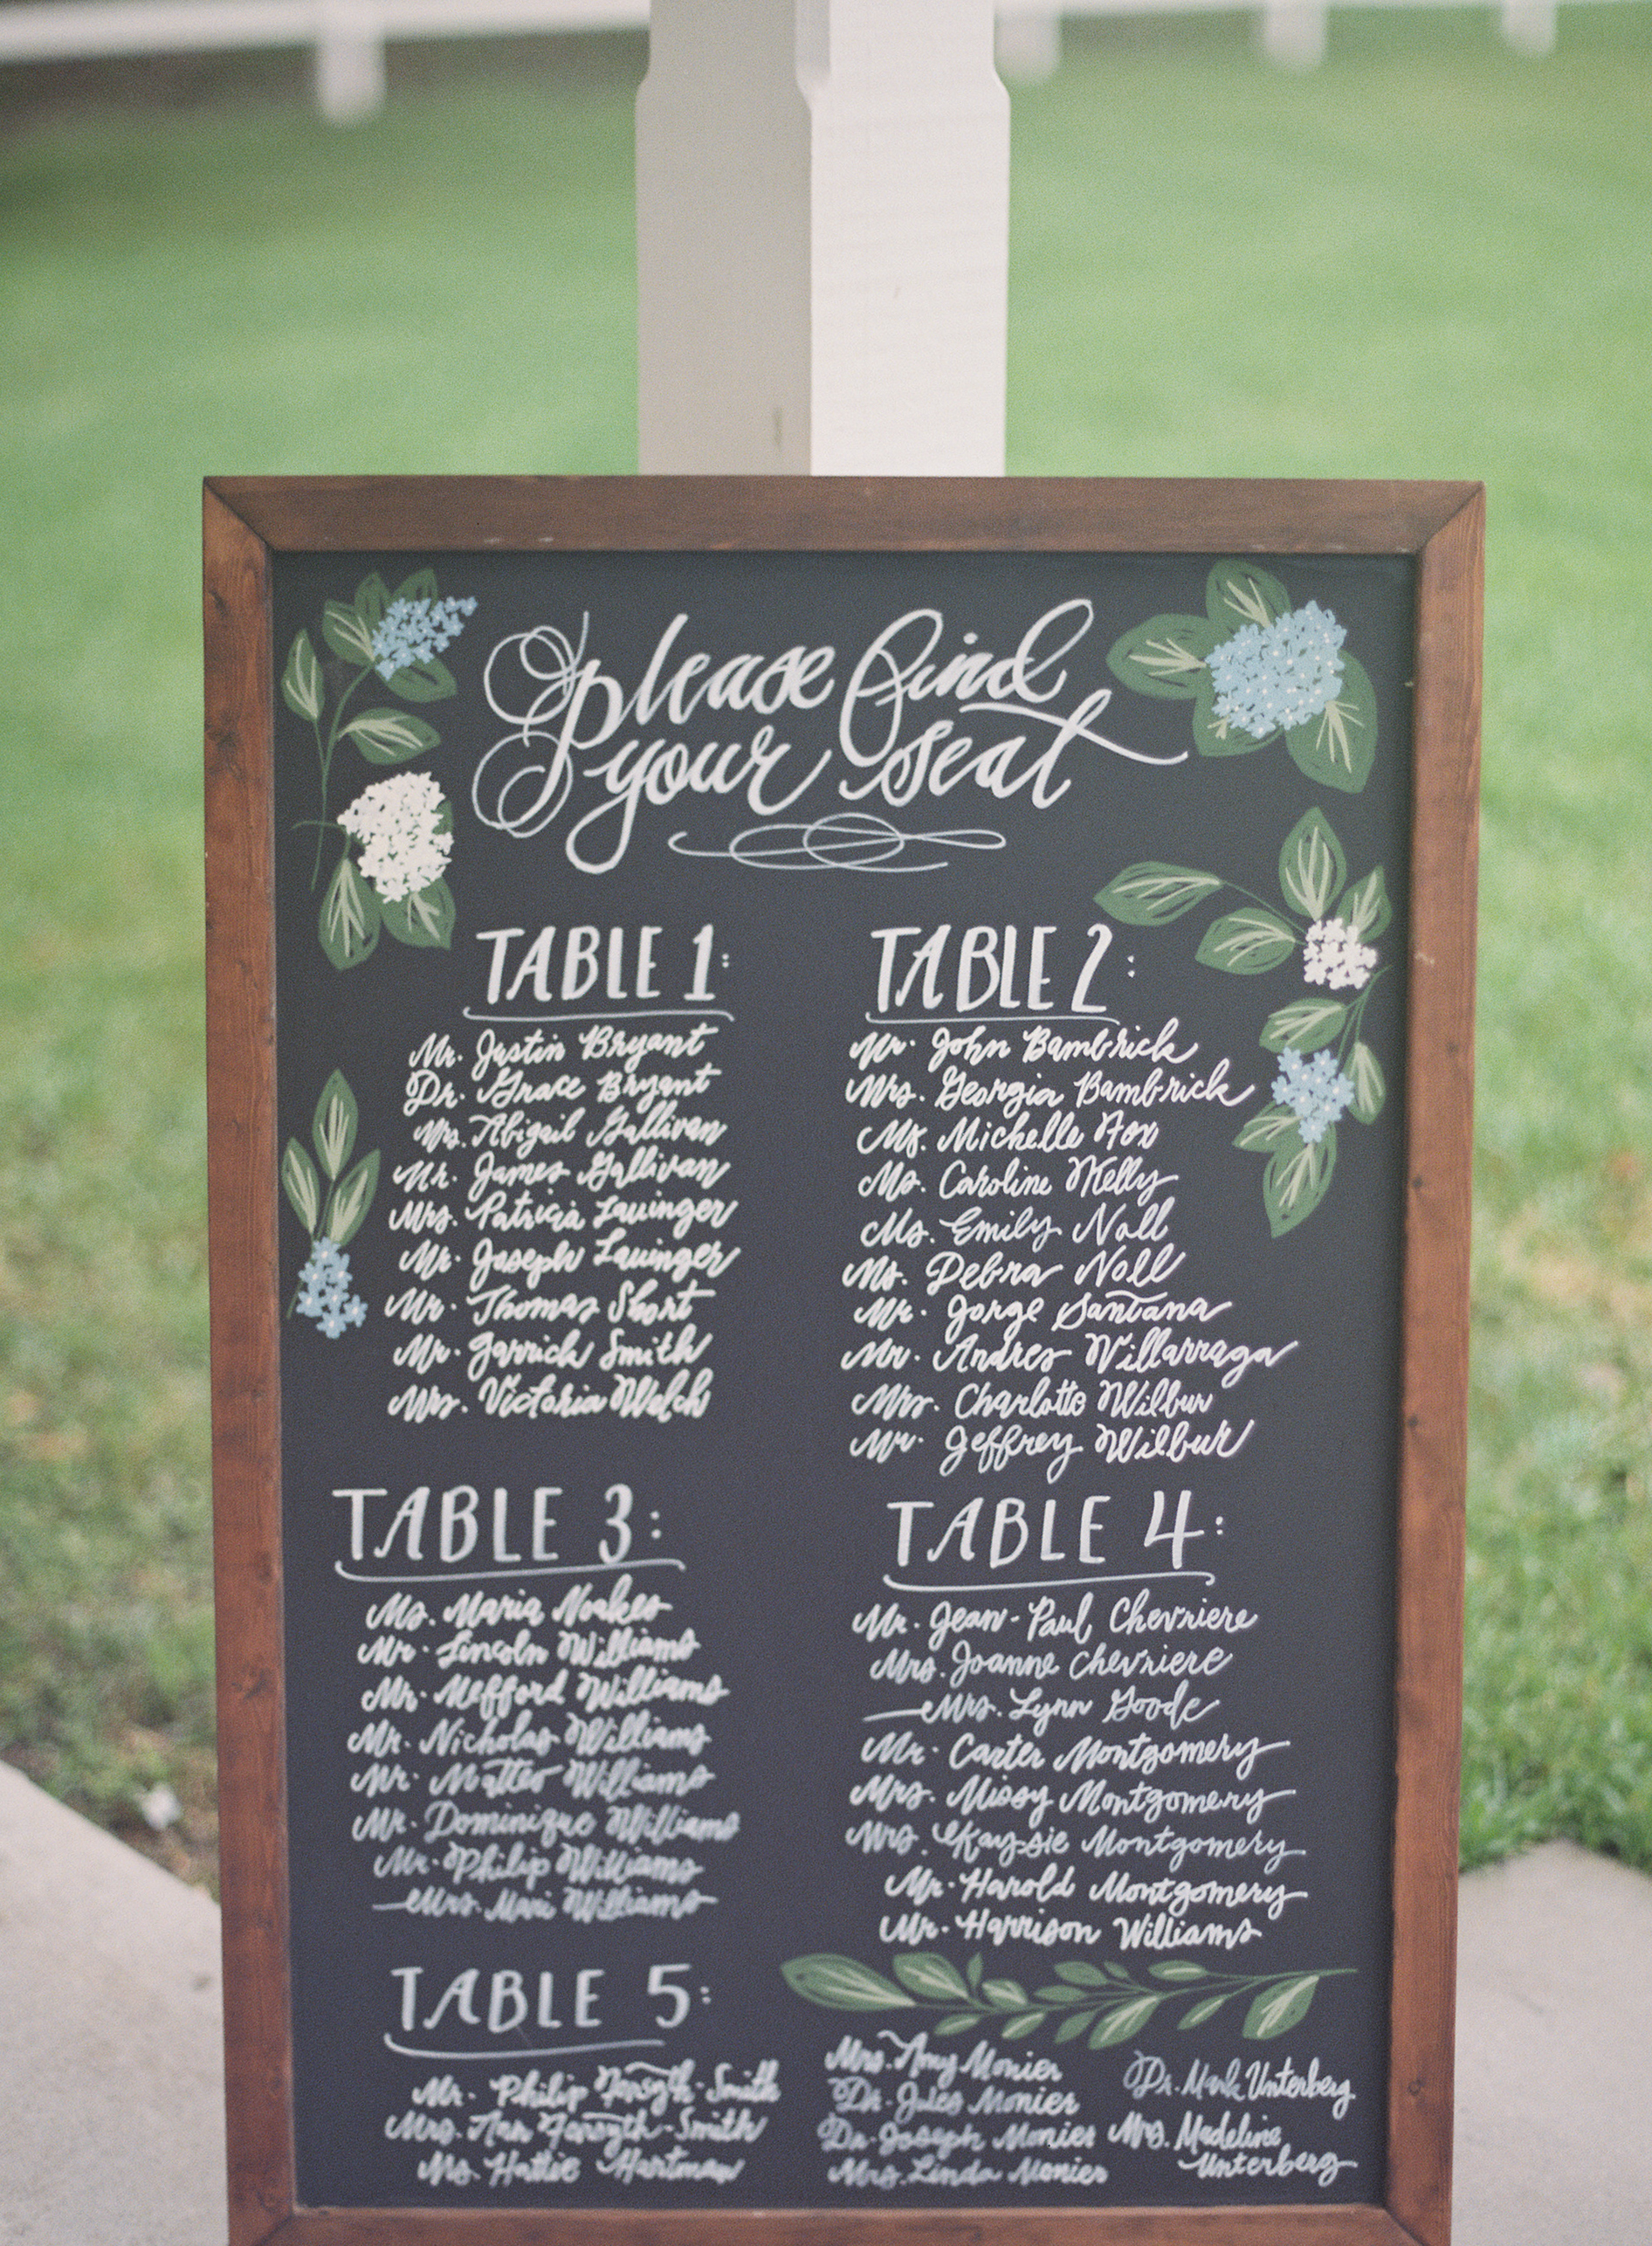 Sapphire Events | Catherine Guidry Photography | Wedding Planning | New Orleans Wedding | Stella Plantation Wedding | Blue and White Wedding | Classic Rainy Day Wedding | Outdoor Wedding | Tent Wedding | Hunter Boots | Blue and White Wedding Details | Small chalk hand-lettering | chalkboard sign | seating chart ideas | calligraphy